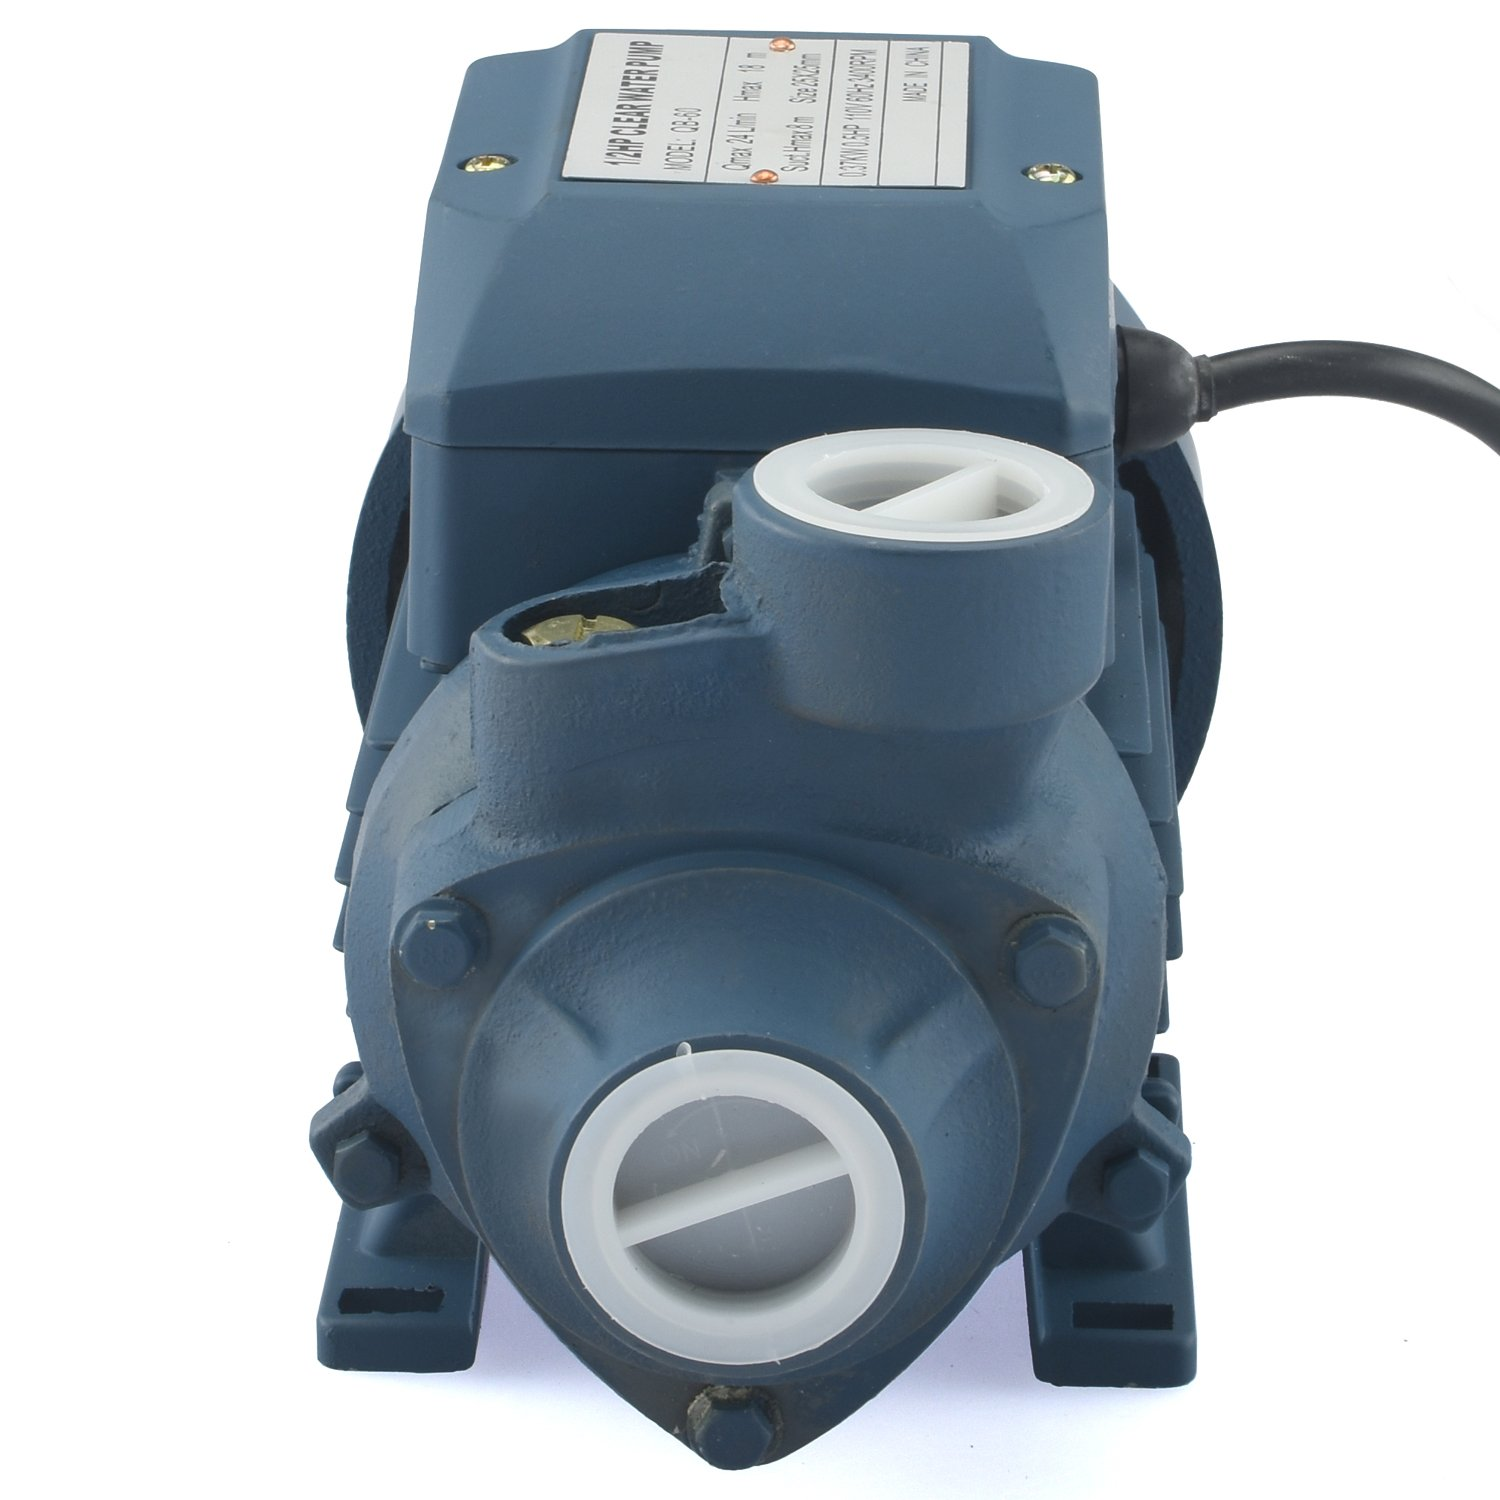 Tooluxe 50635 Electric Centrifugal Clear Water Pump, 0.5 HP | Pools, Ponds, Irrigation, Garden, Sprinkling | 380 GPH by Tooluxe (Image #2)